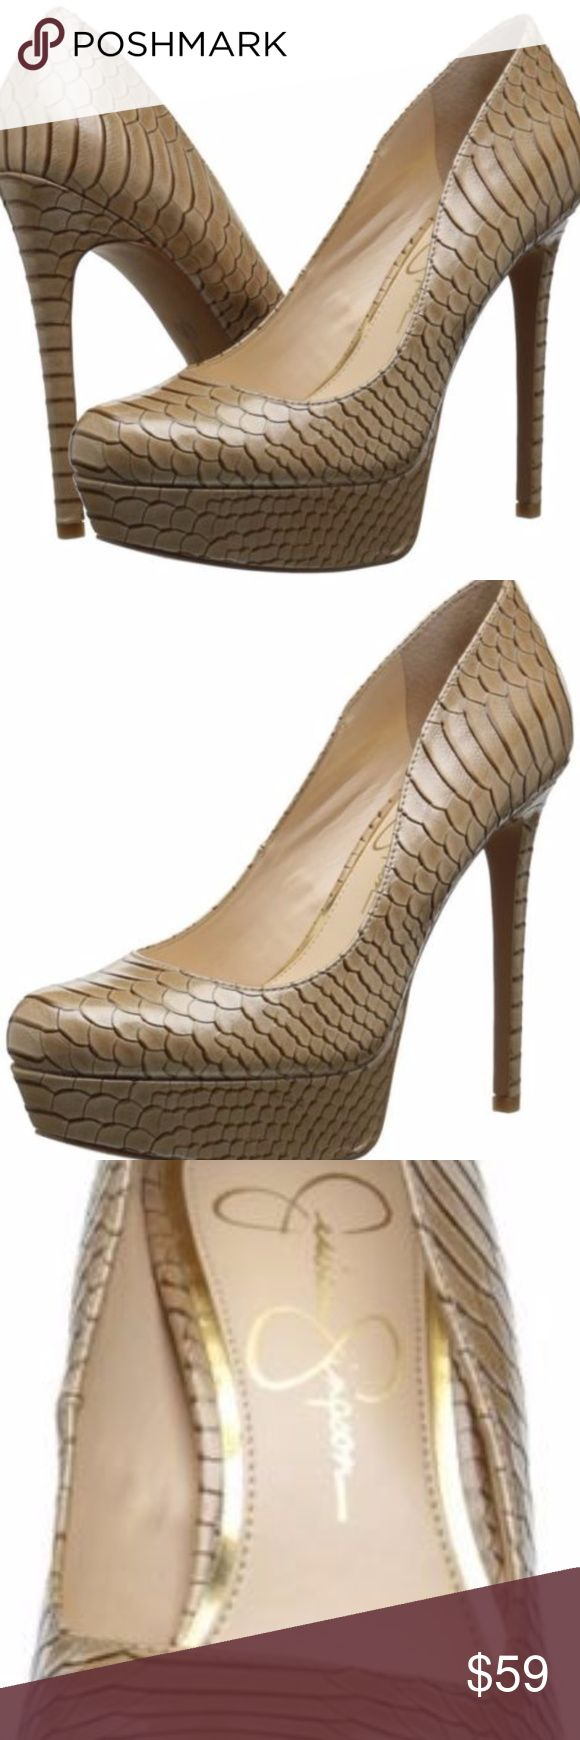 Jessica-Simpson-Women-Heels-Pump-Snake-Skin-Nude- Condition: New with box: A brand-new, unused, and unworn item  Brand: Jessica Simpson Occasion:FormalStyle:Pumps, Classics Heel Type:StilettoUS Shoe Size (Women's):8.5 and 9 Heel Height:High (3 in. and Up)Width:Medium (B, M) Material:SnakeskinColor: Nude Pattern:Snakeskin Jessica Simpson Shoes